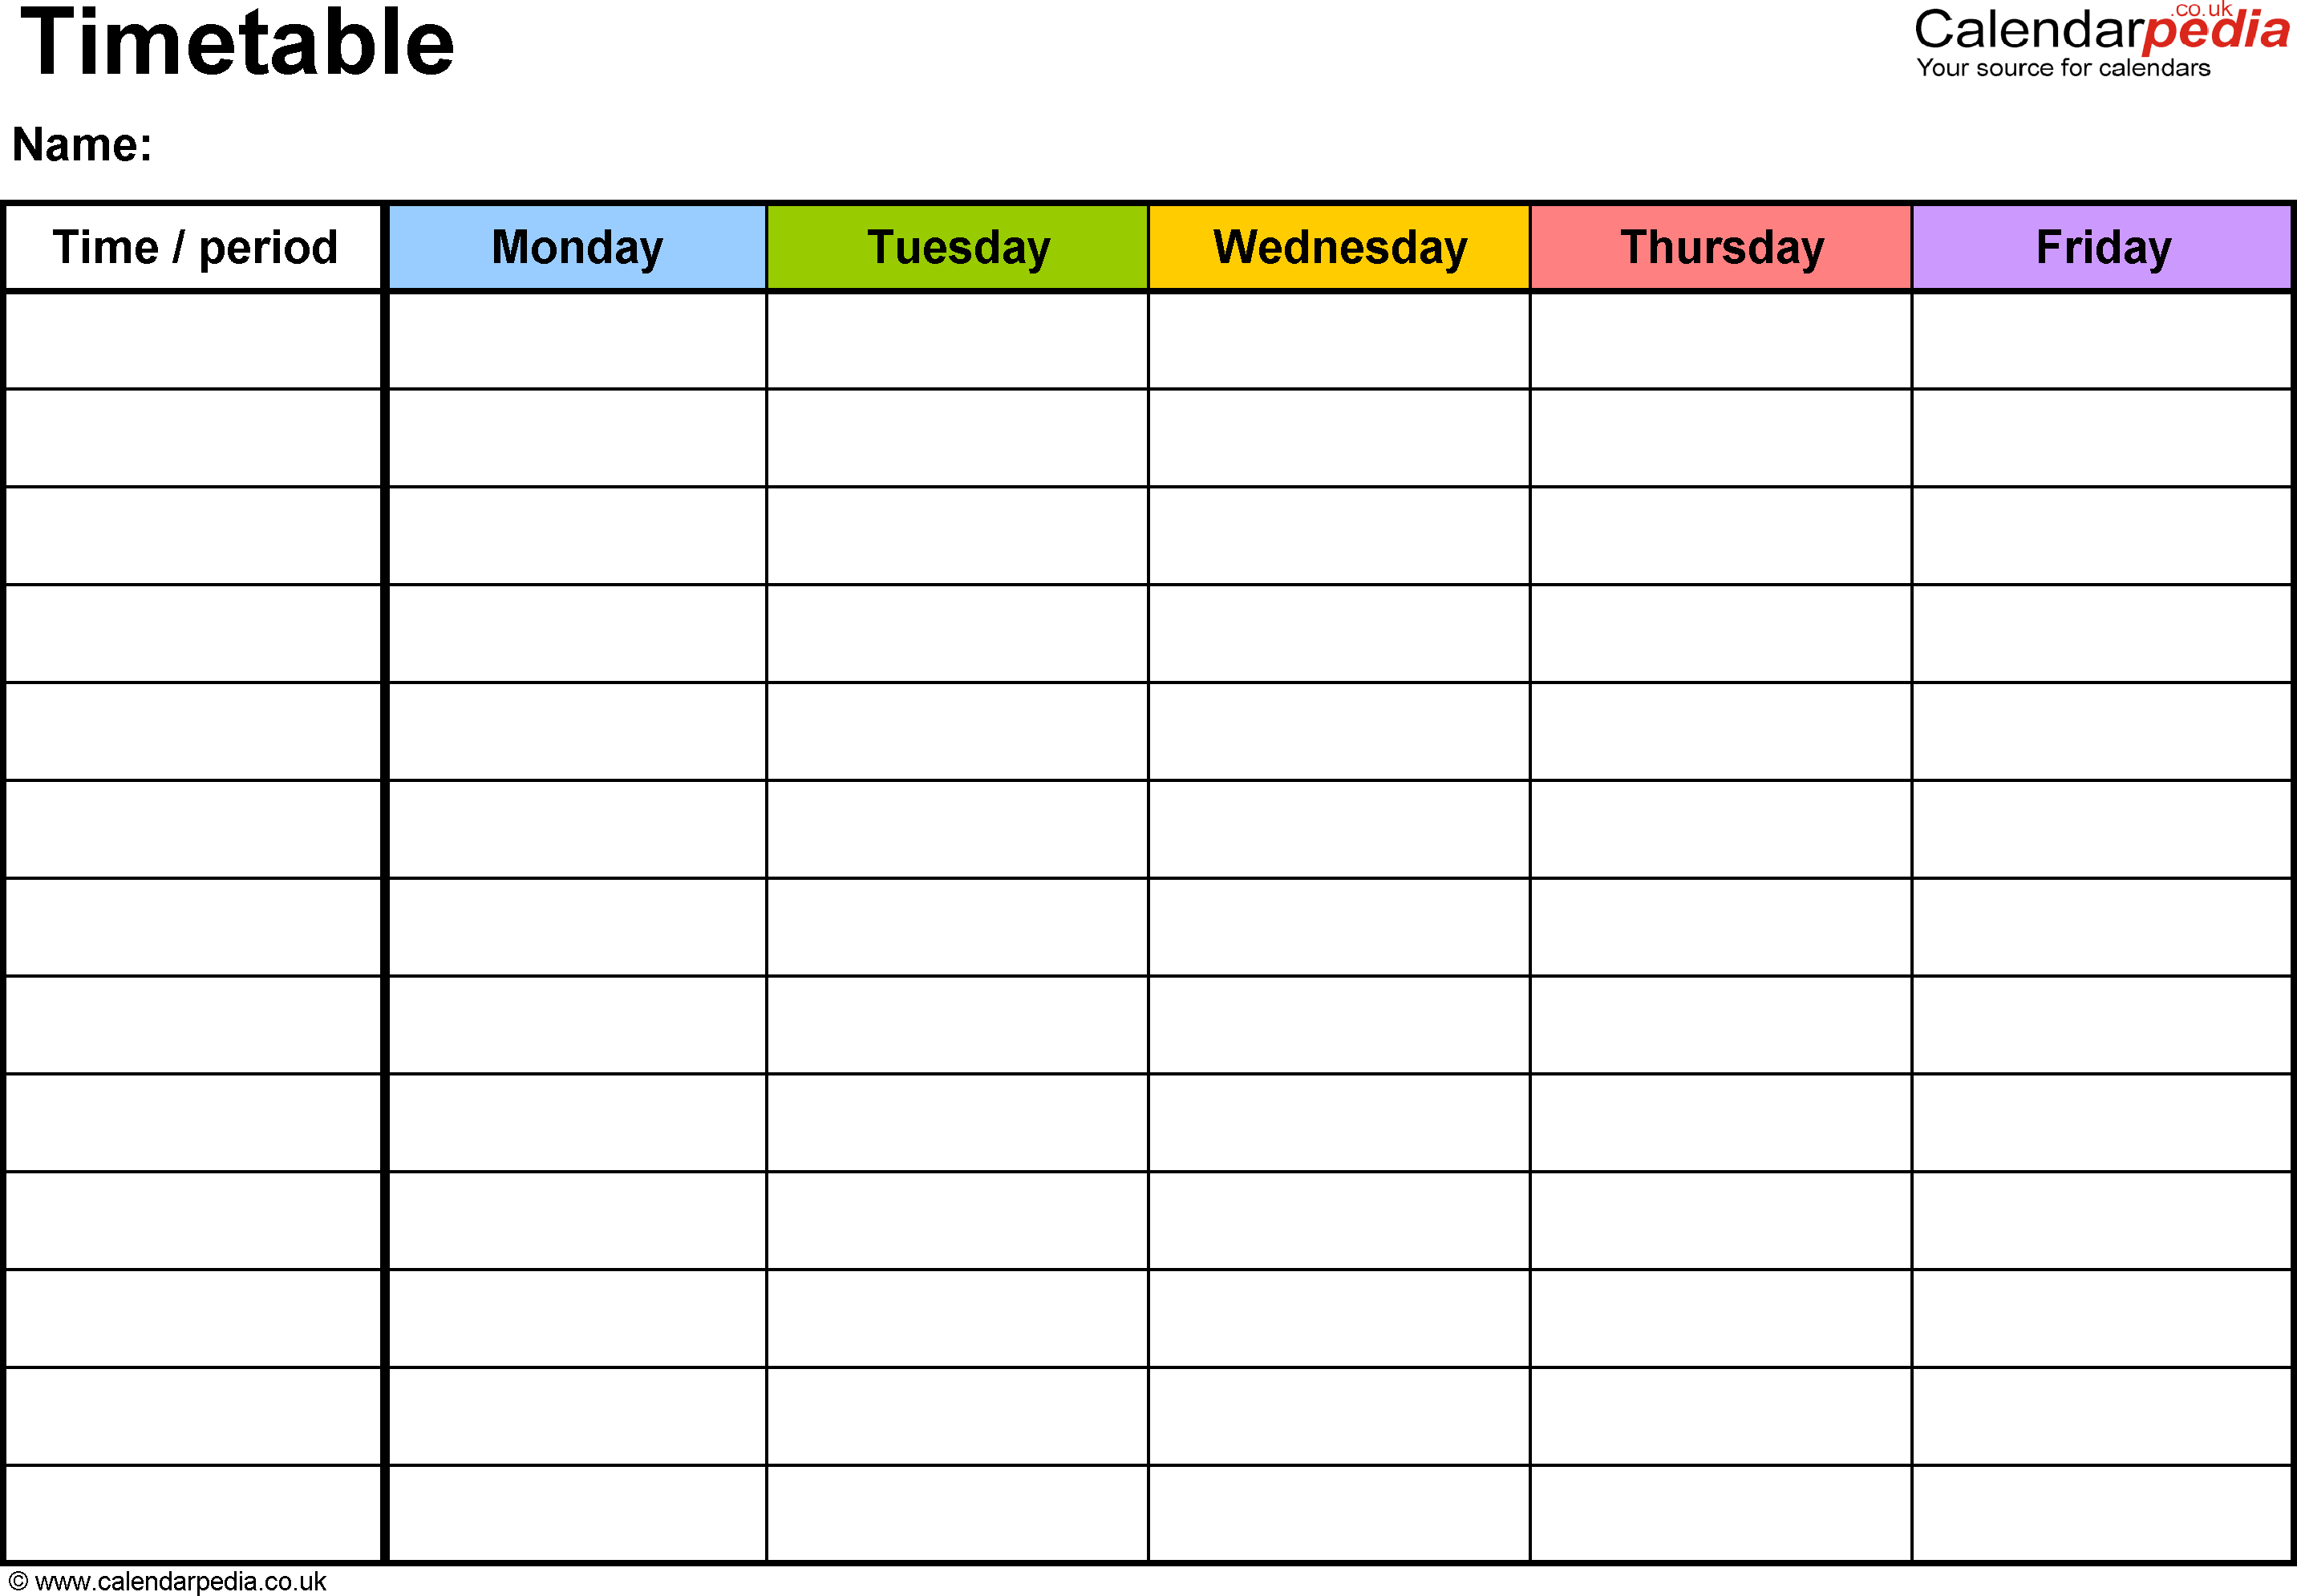 Pdf Timetable Template 2: Landscape Format, A4, 1 Page with Printable 5 Day Week Calendar